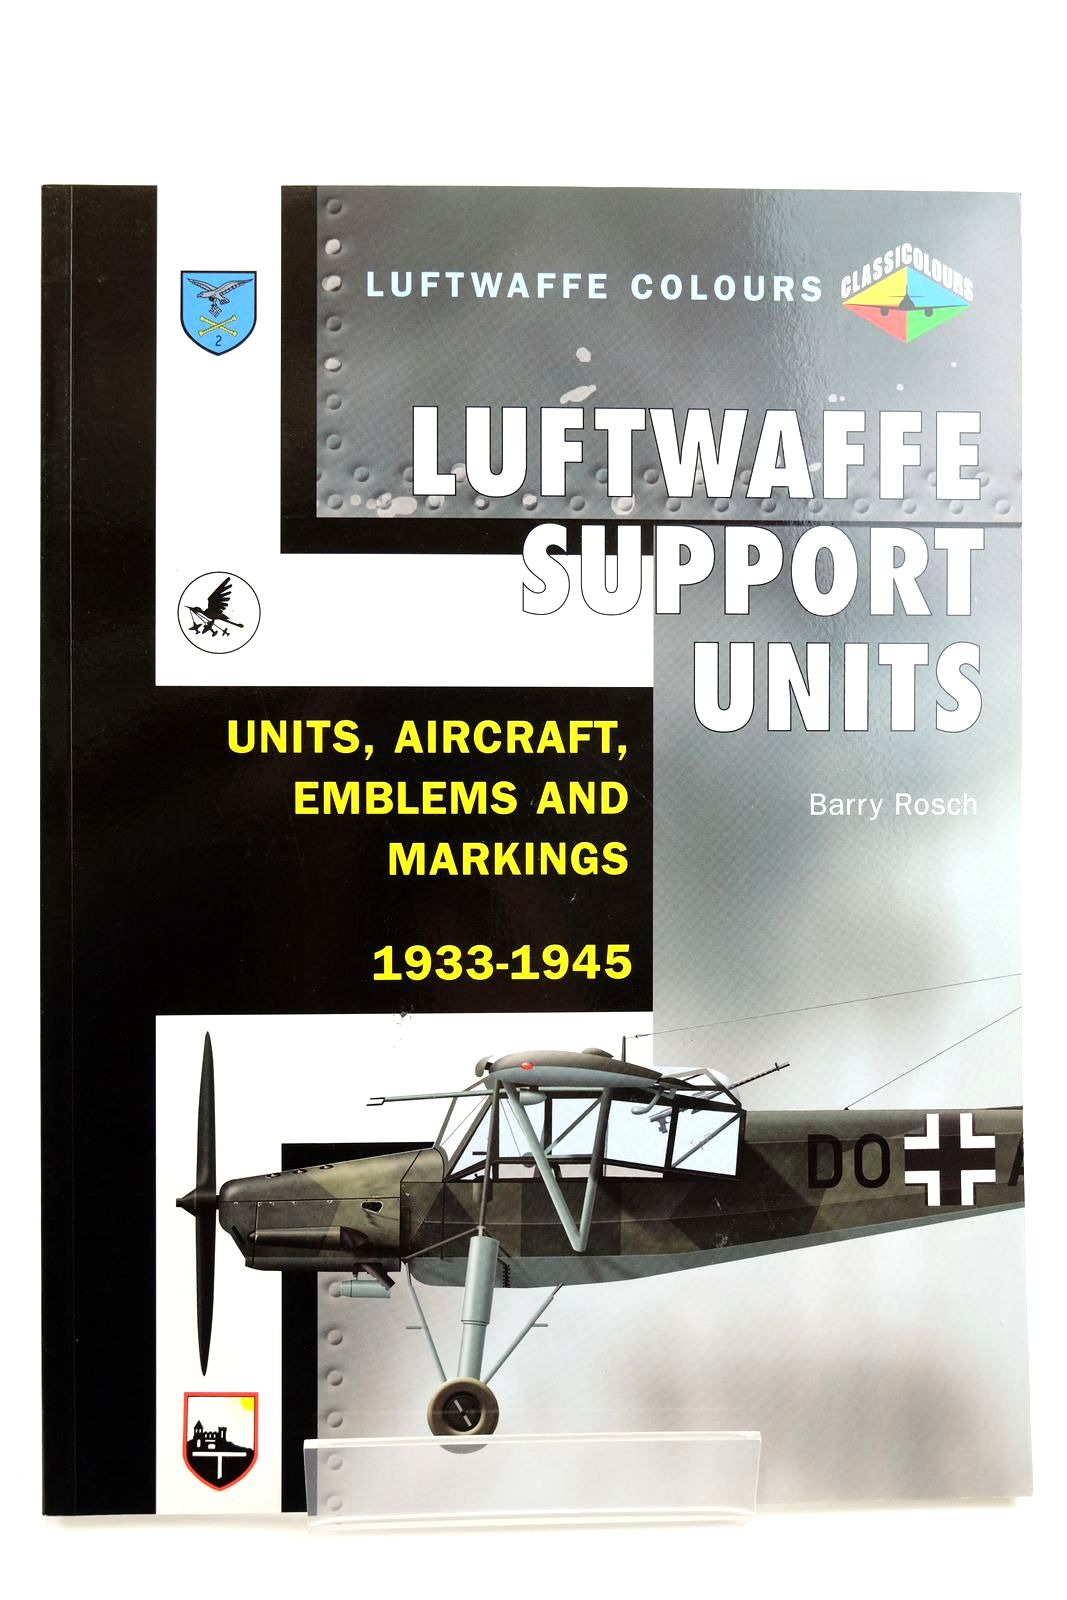 Photo of LUFTWAFFE SUPPORT UNITS UNITS, AIRCRAFT, EMBLEMS AND MARKINGS 1933-1945 written by Rosch, Barry published by Ian Allan (STOCK CODE: 2132218)  for sale by Stella & Rose's Books